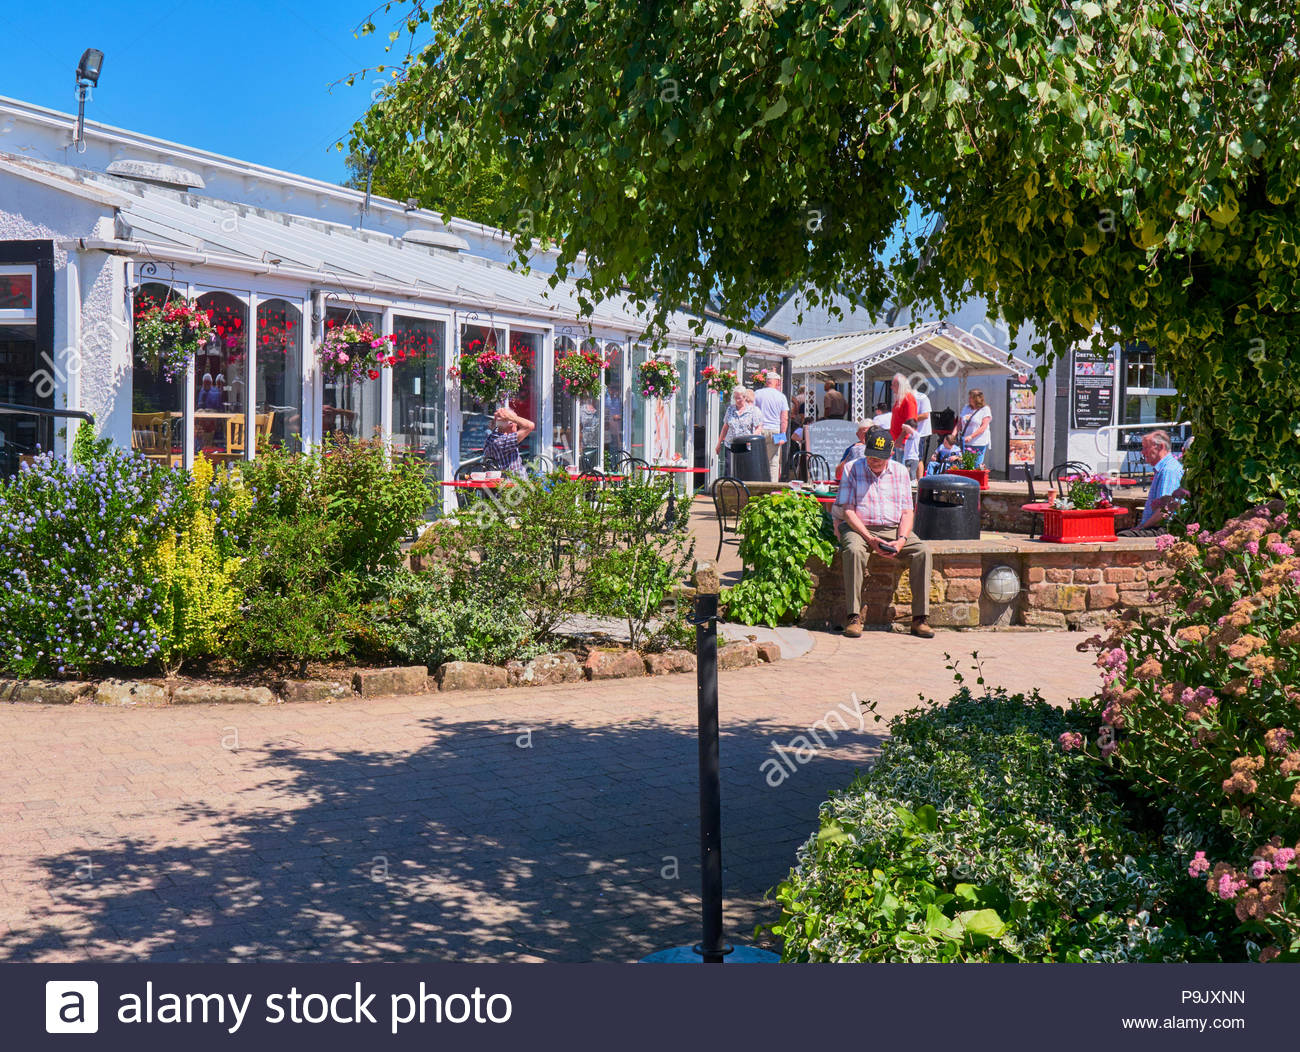 The conservatory cafe bar in gretna green dumfriesshire scotland uk - Stock Image